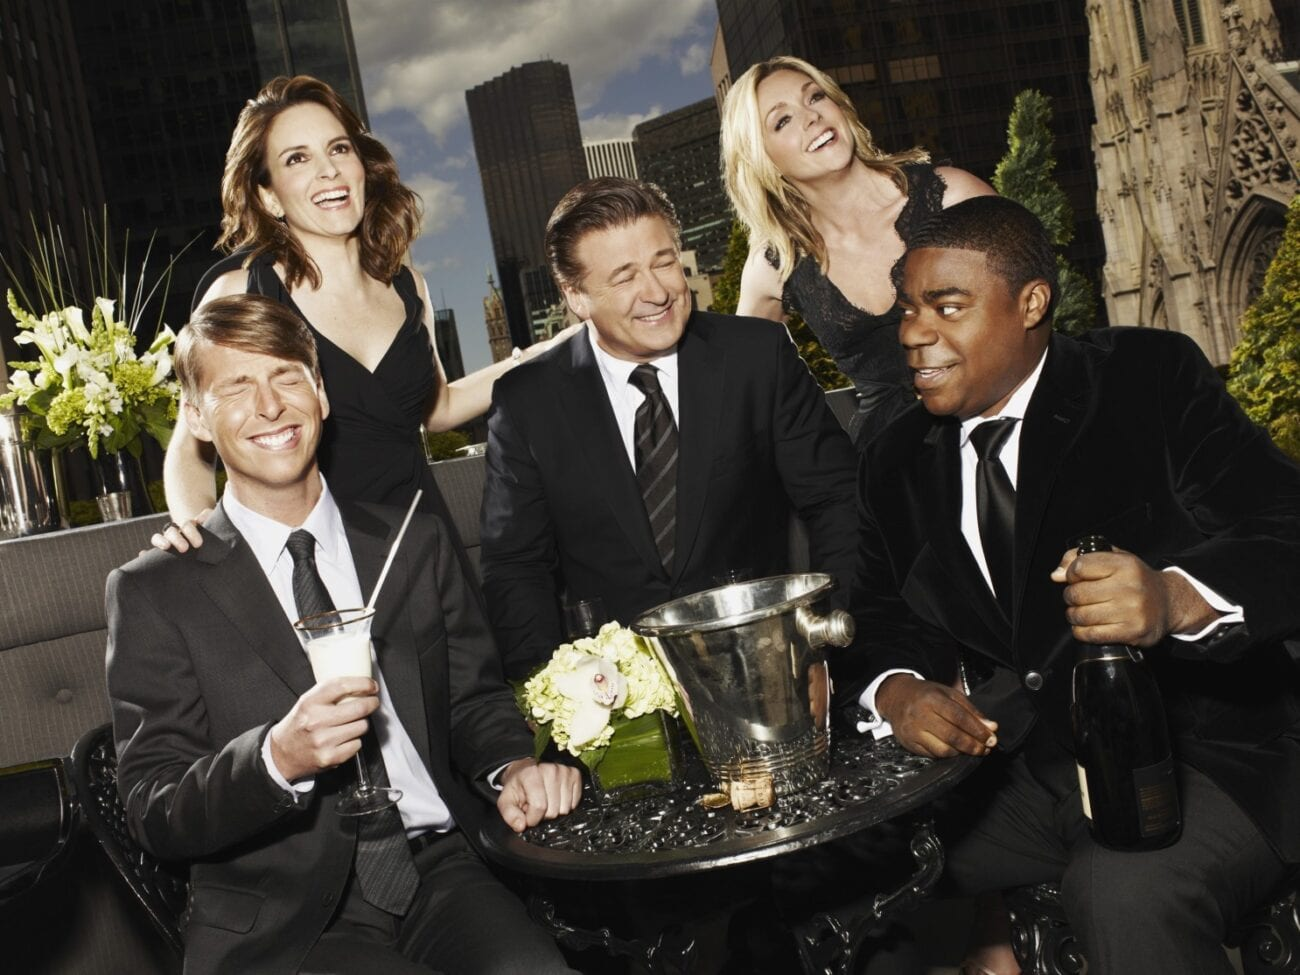 The special episode will bring back the well-known cast from the hit TV comedy '30 Rock'. Here's what we expect from the reunion.